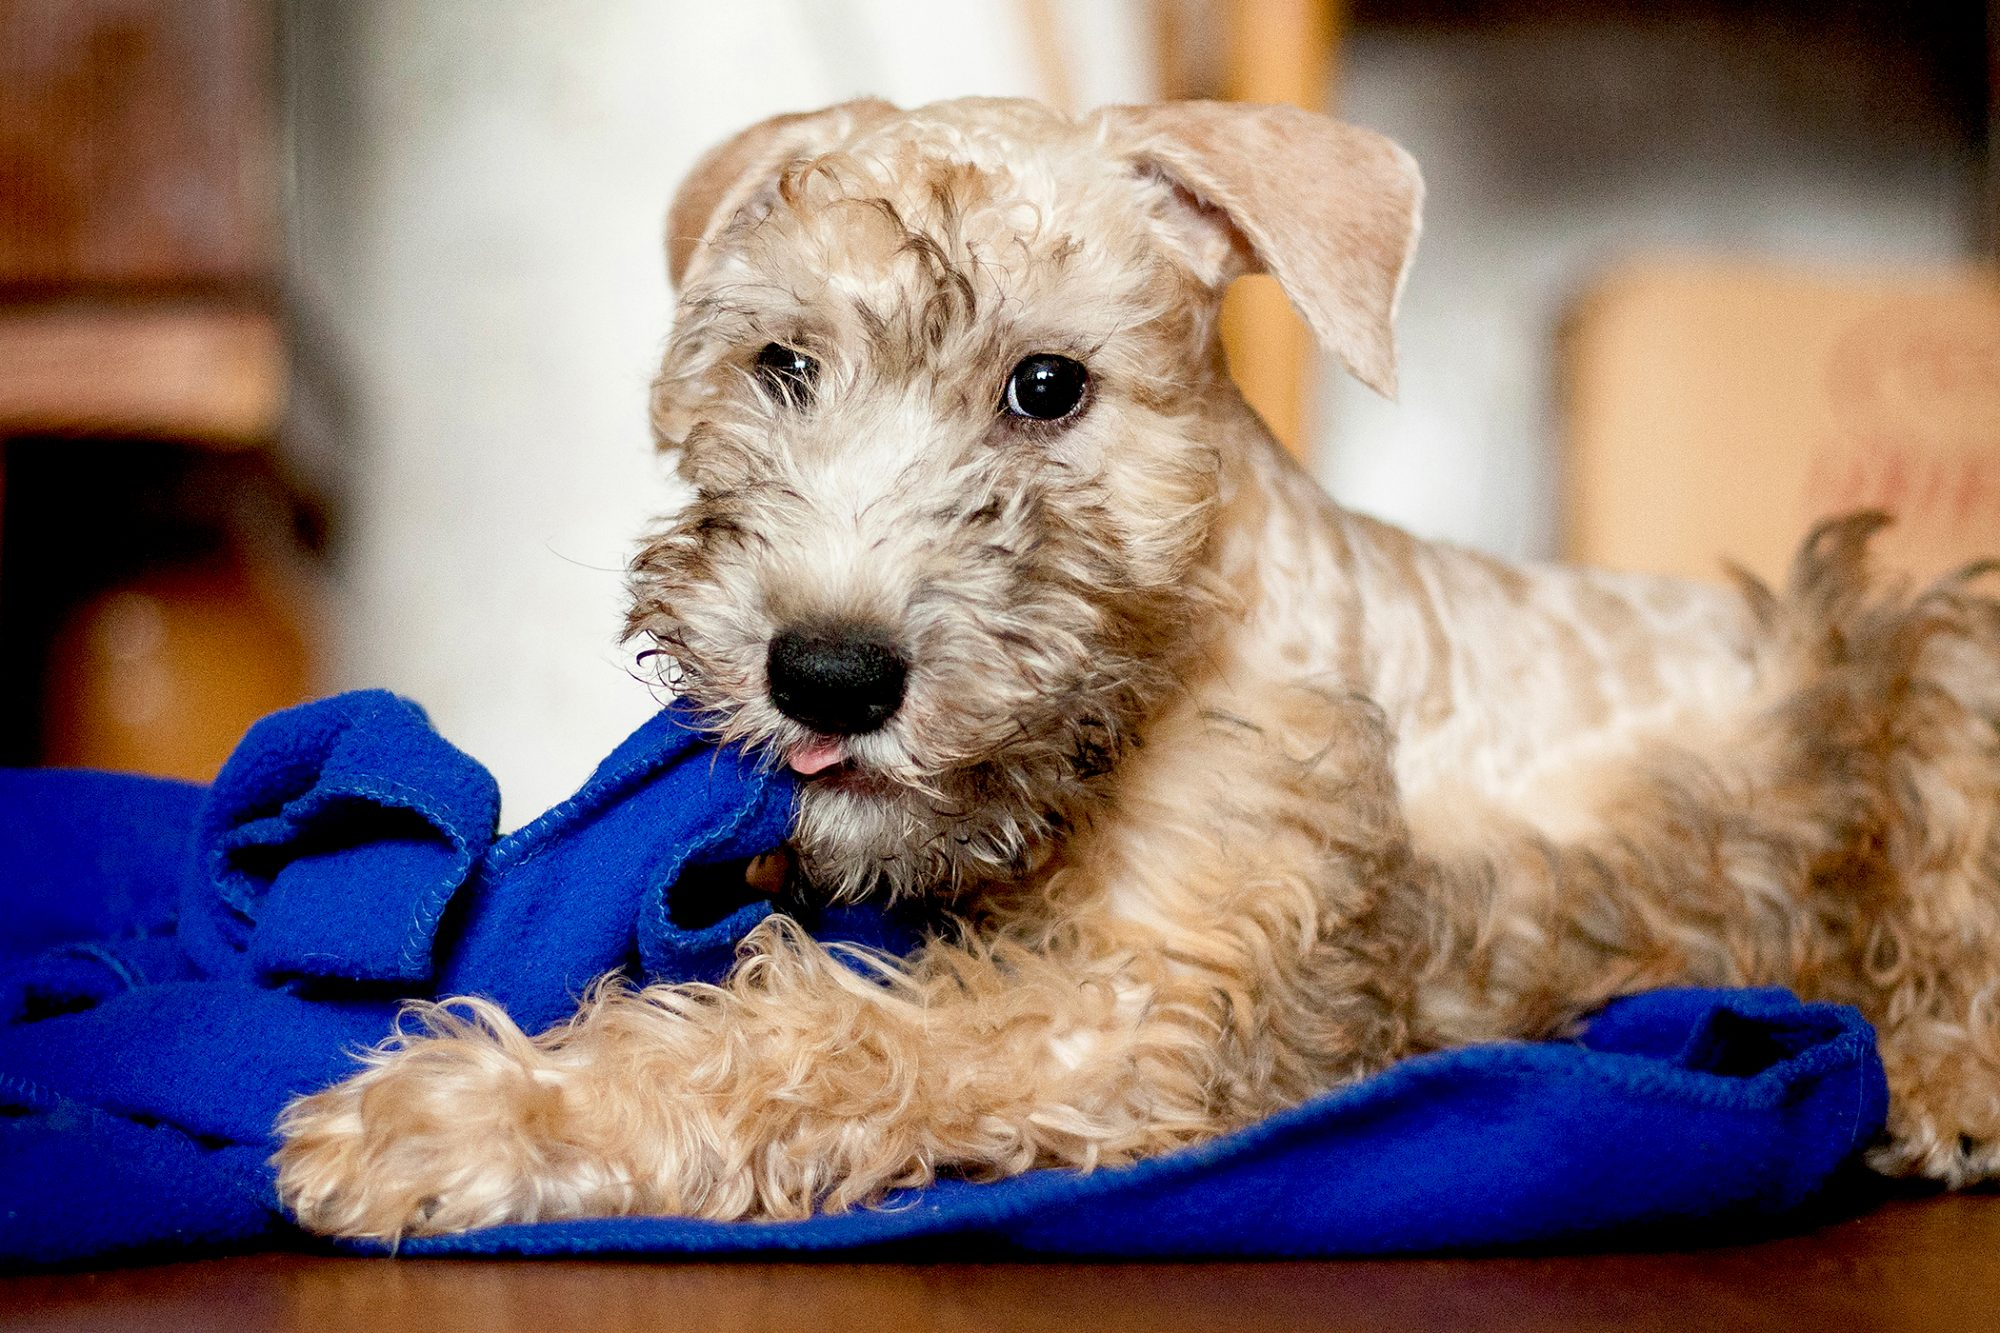 Soft-coated wheaten terrier puppy plays with blue blanket